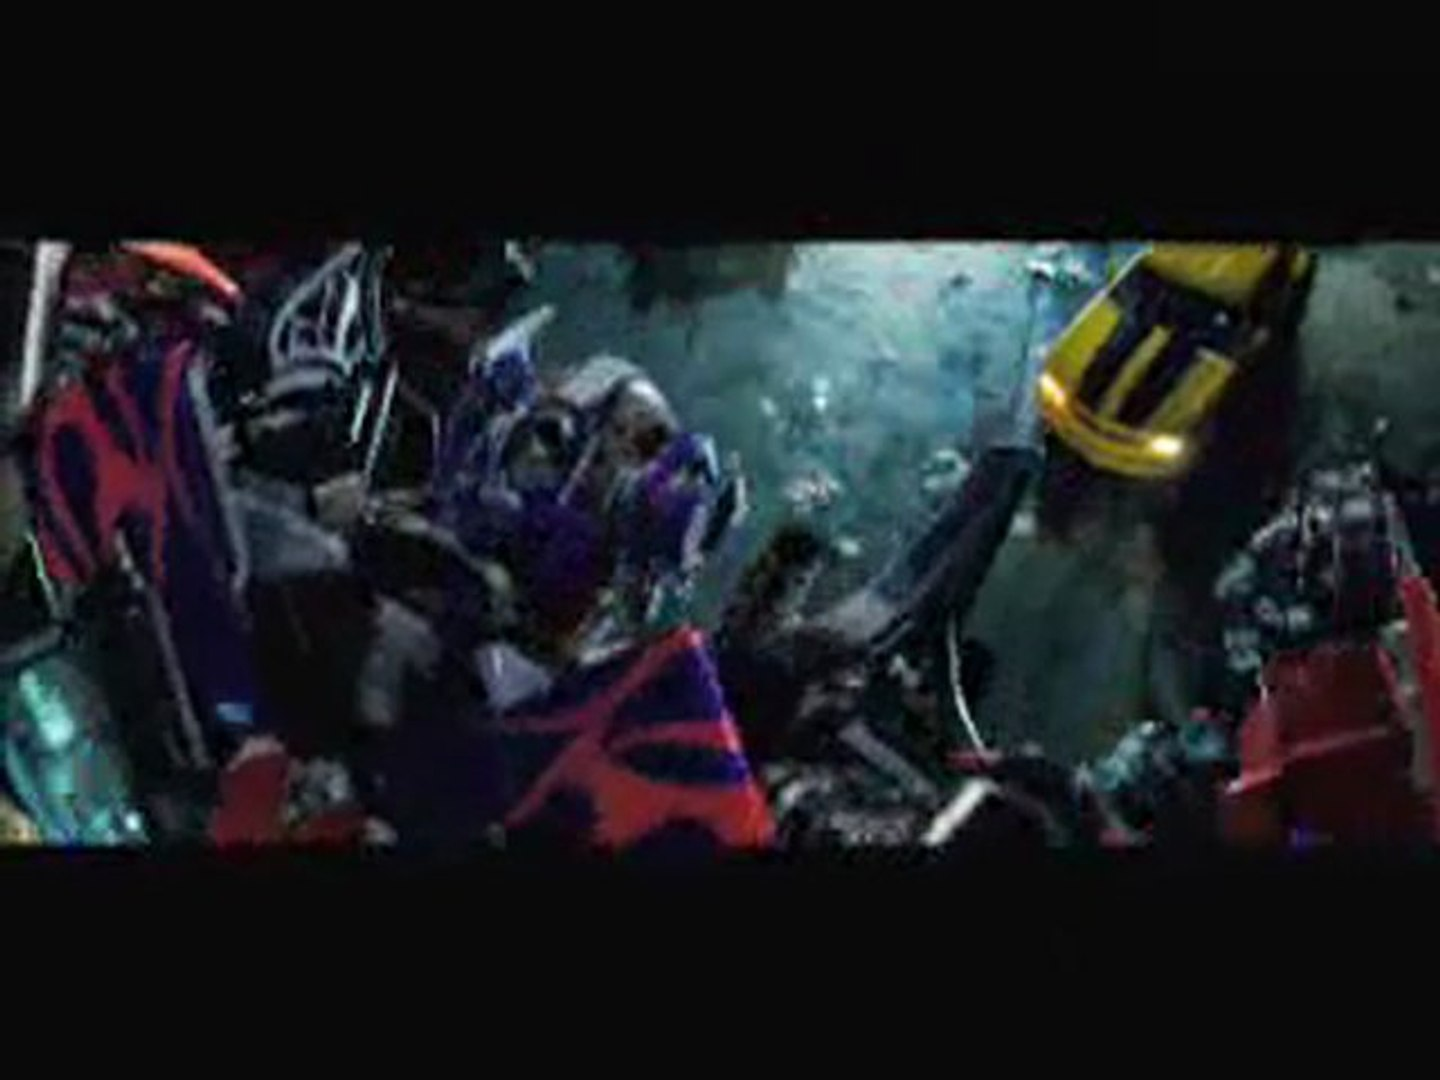 Transformers : Bande annonce